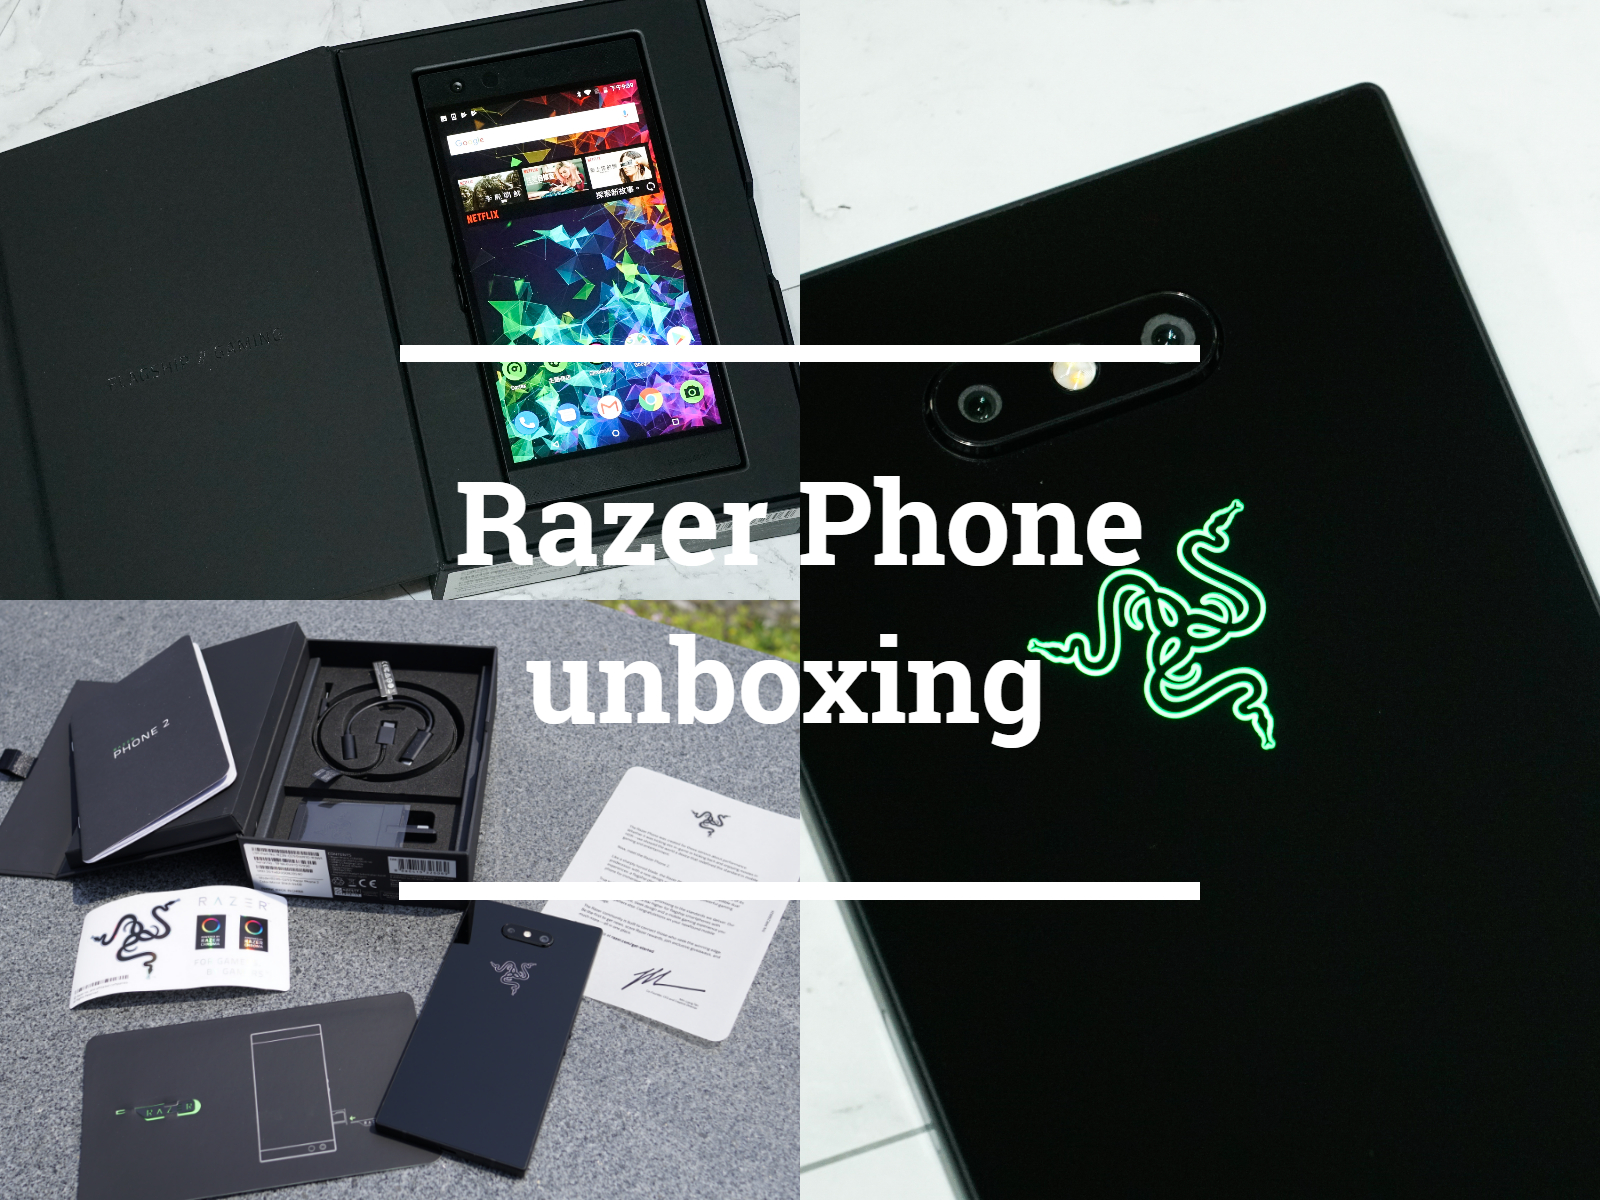 Razer Phone2 開箱|電競手機推薦!最適合手遊的手機,設計、規格、功能詳細開箱介紹!